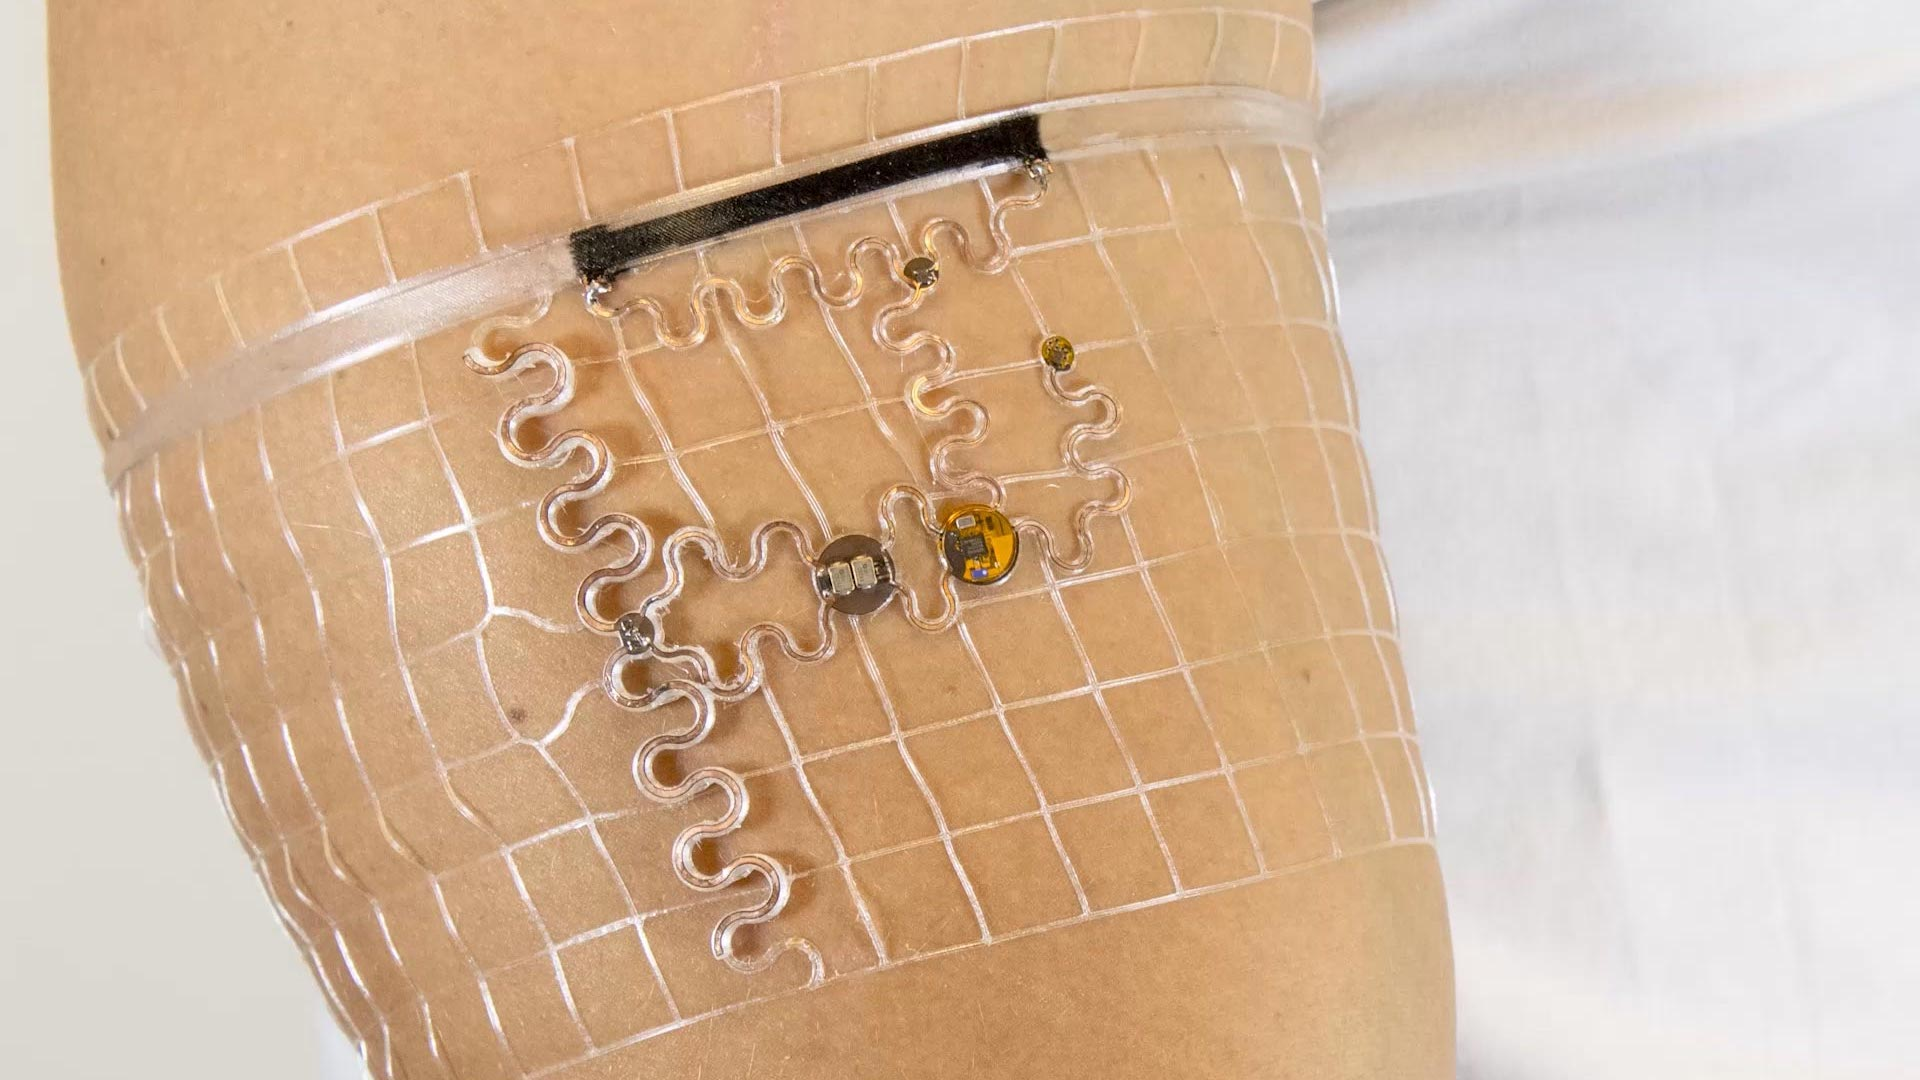 Tiny sensors are embedded in a fitting mesh structure worn like a sleeve.